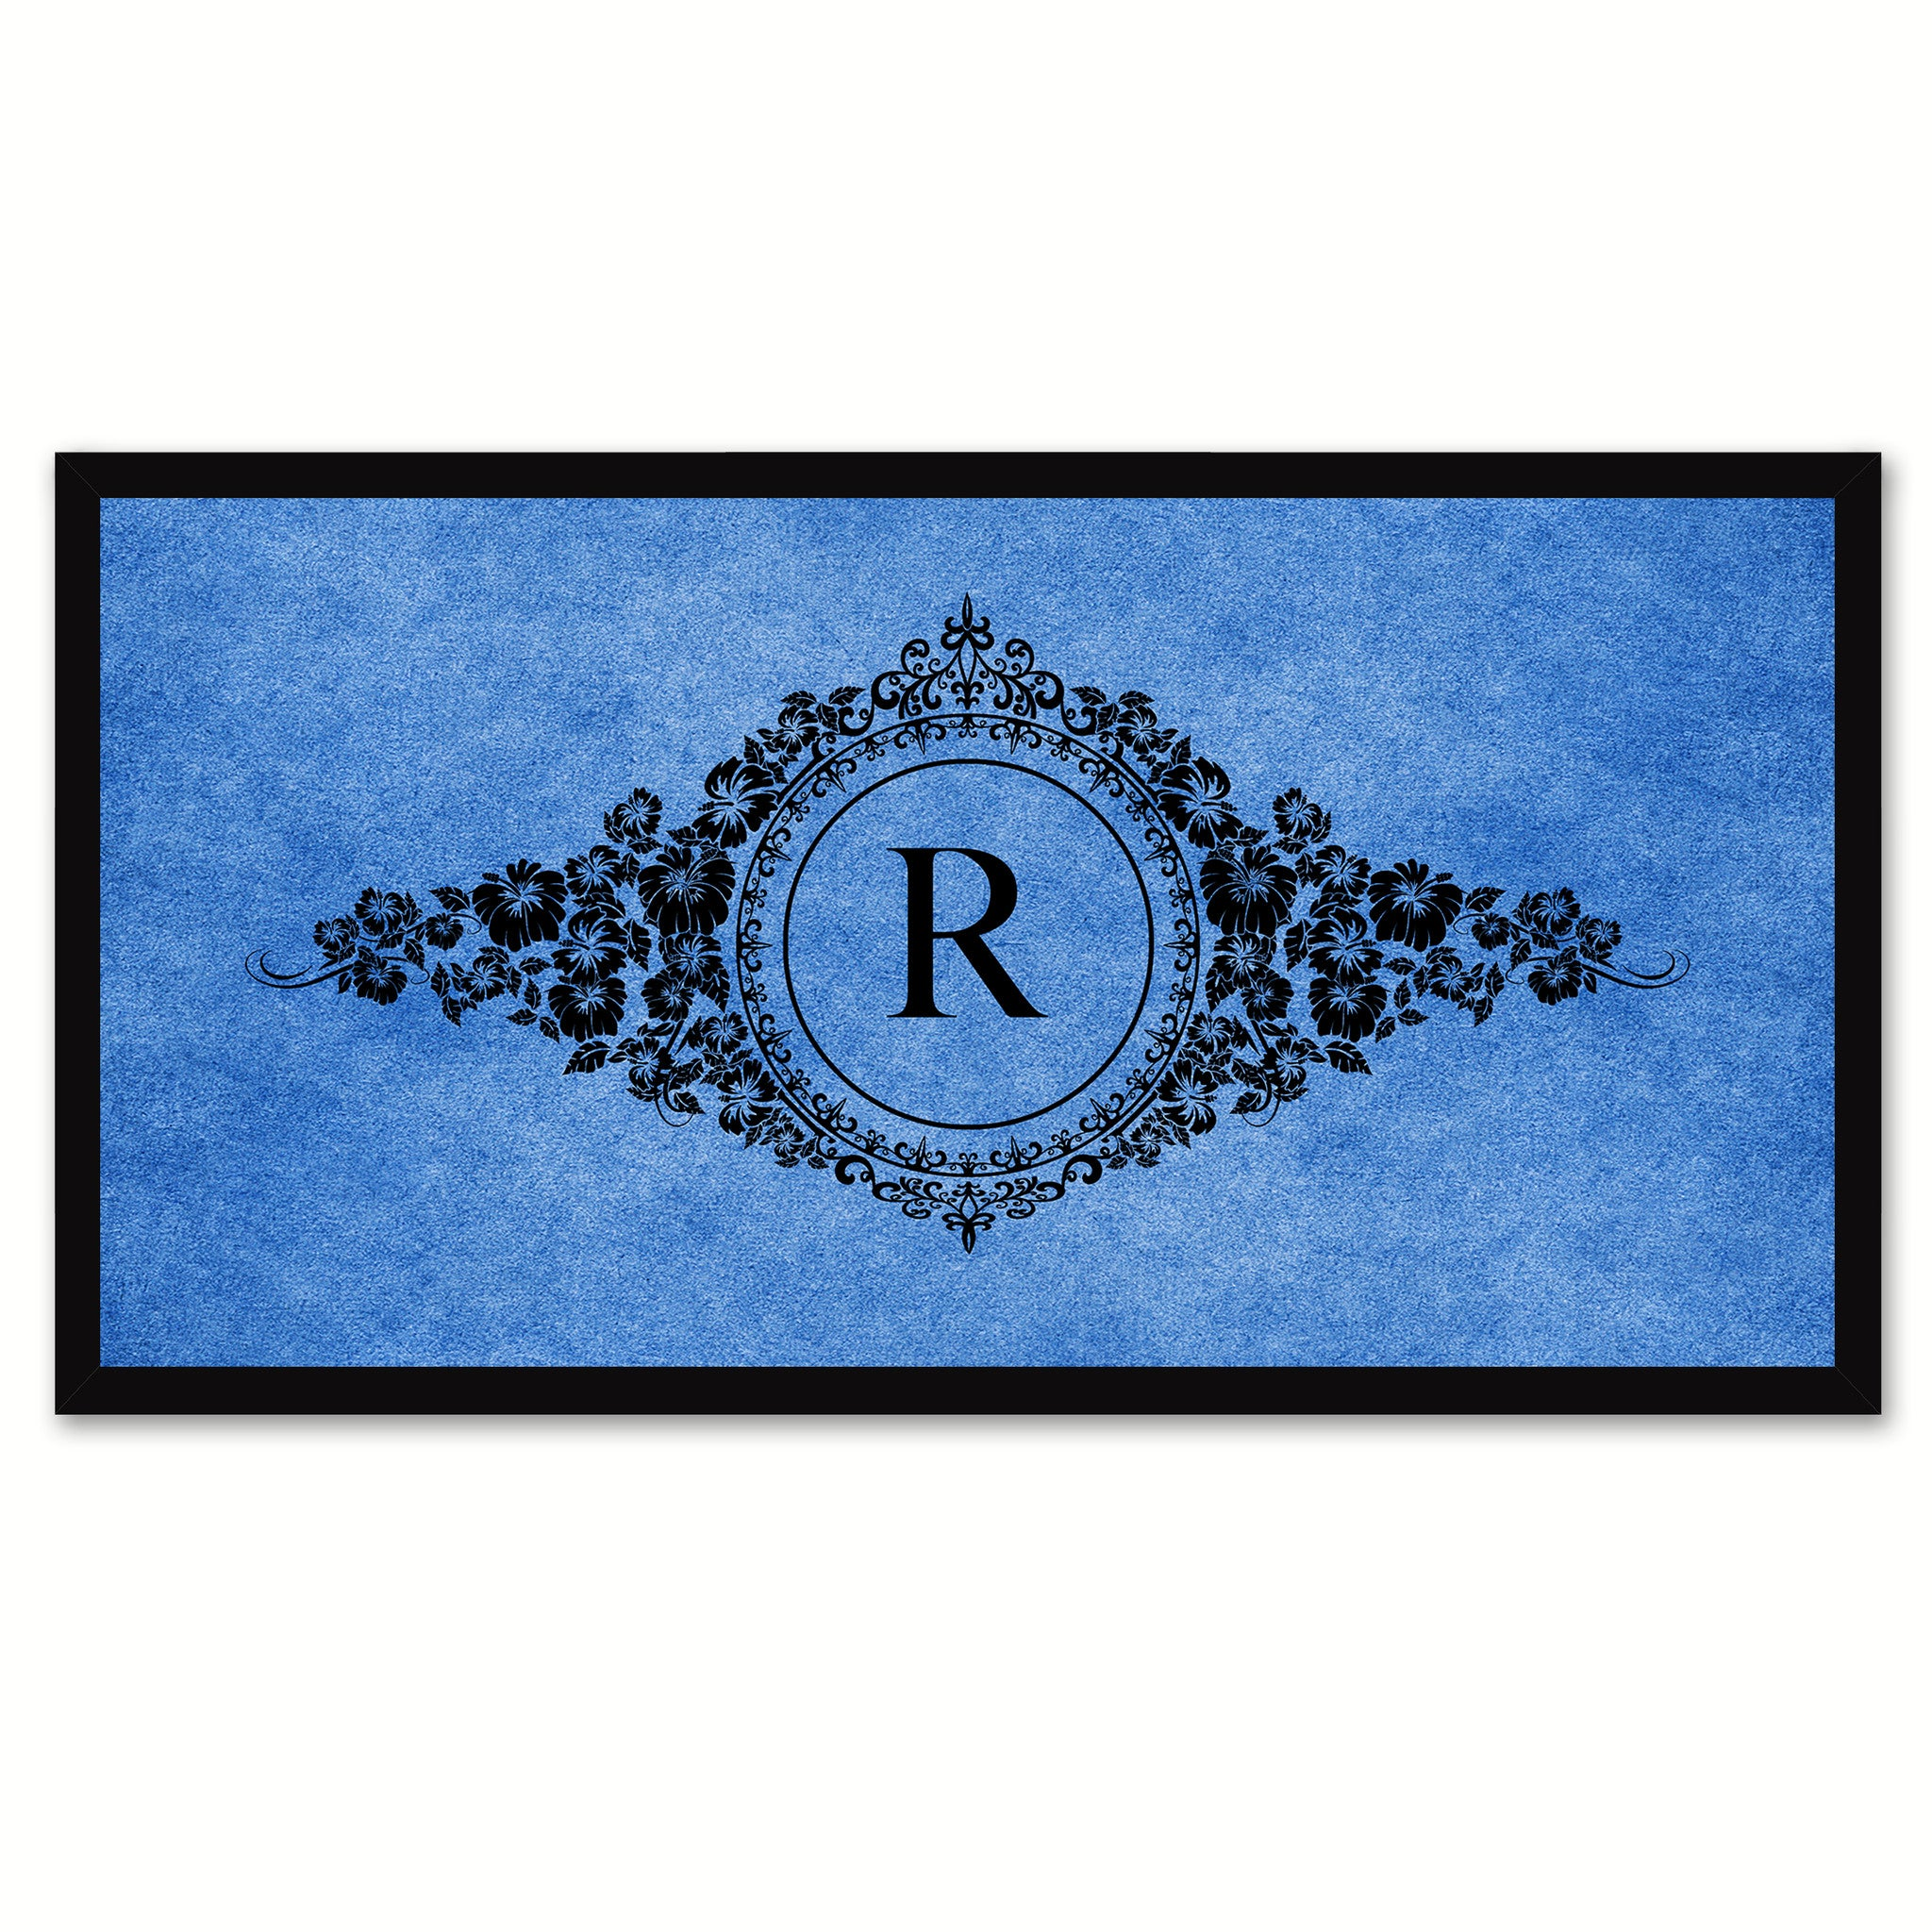 Alphabet Letter R Blue Canvas Print, Black Custom Frame